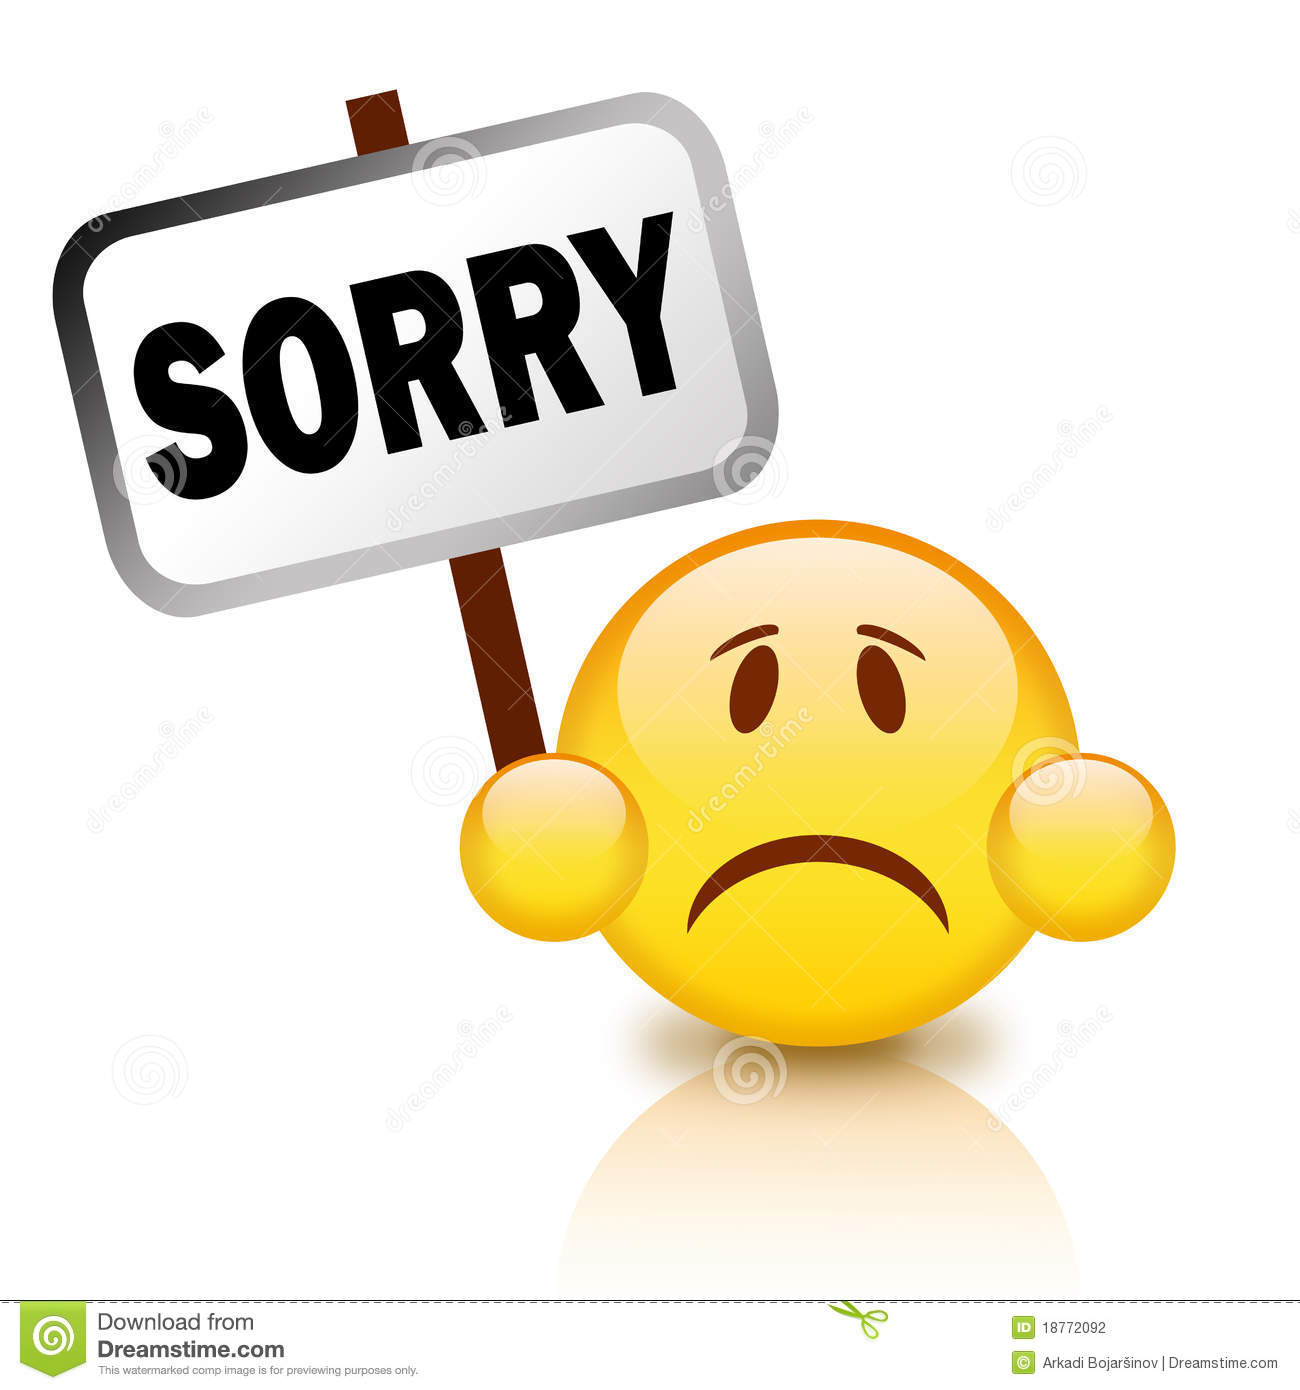 Saying sorry clipart graphic freeuse stock Download Saying Sorry Clipart | Clipart Panda - Free Clipart ... graphic freeuse stock